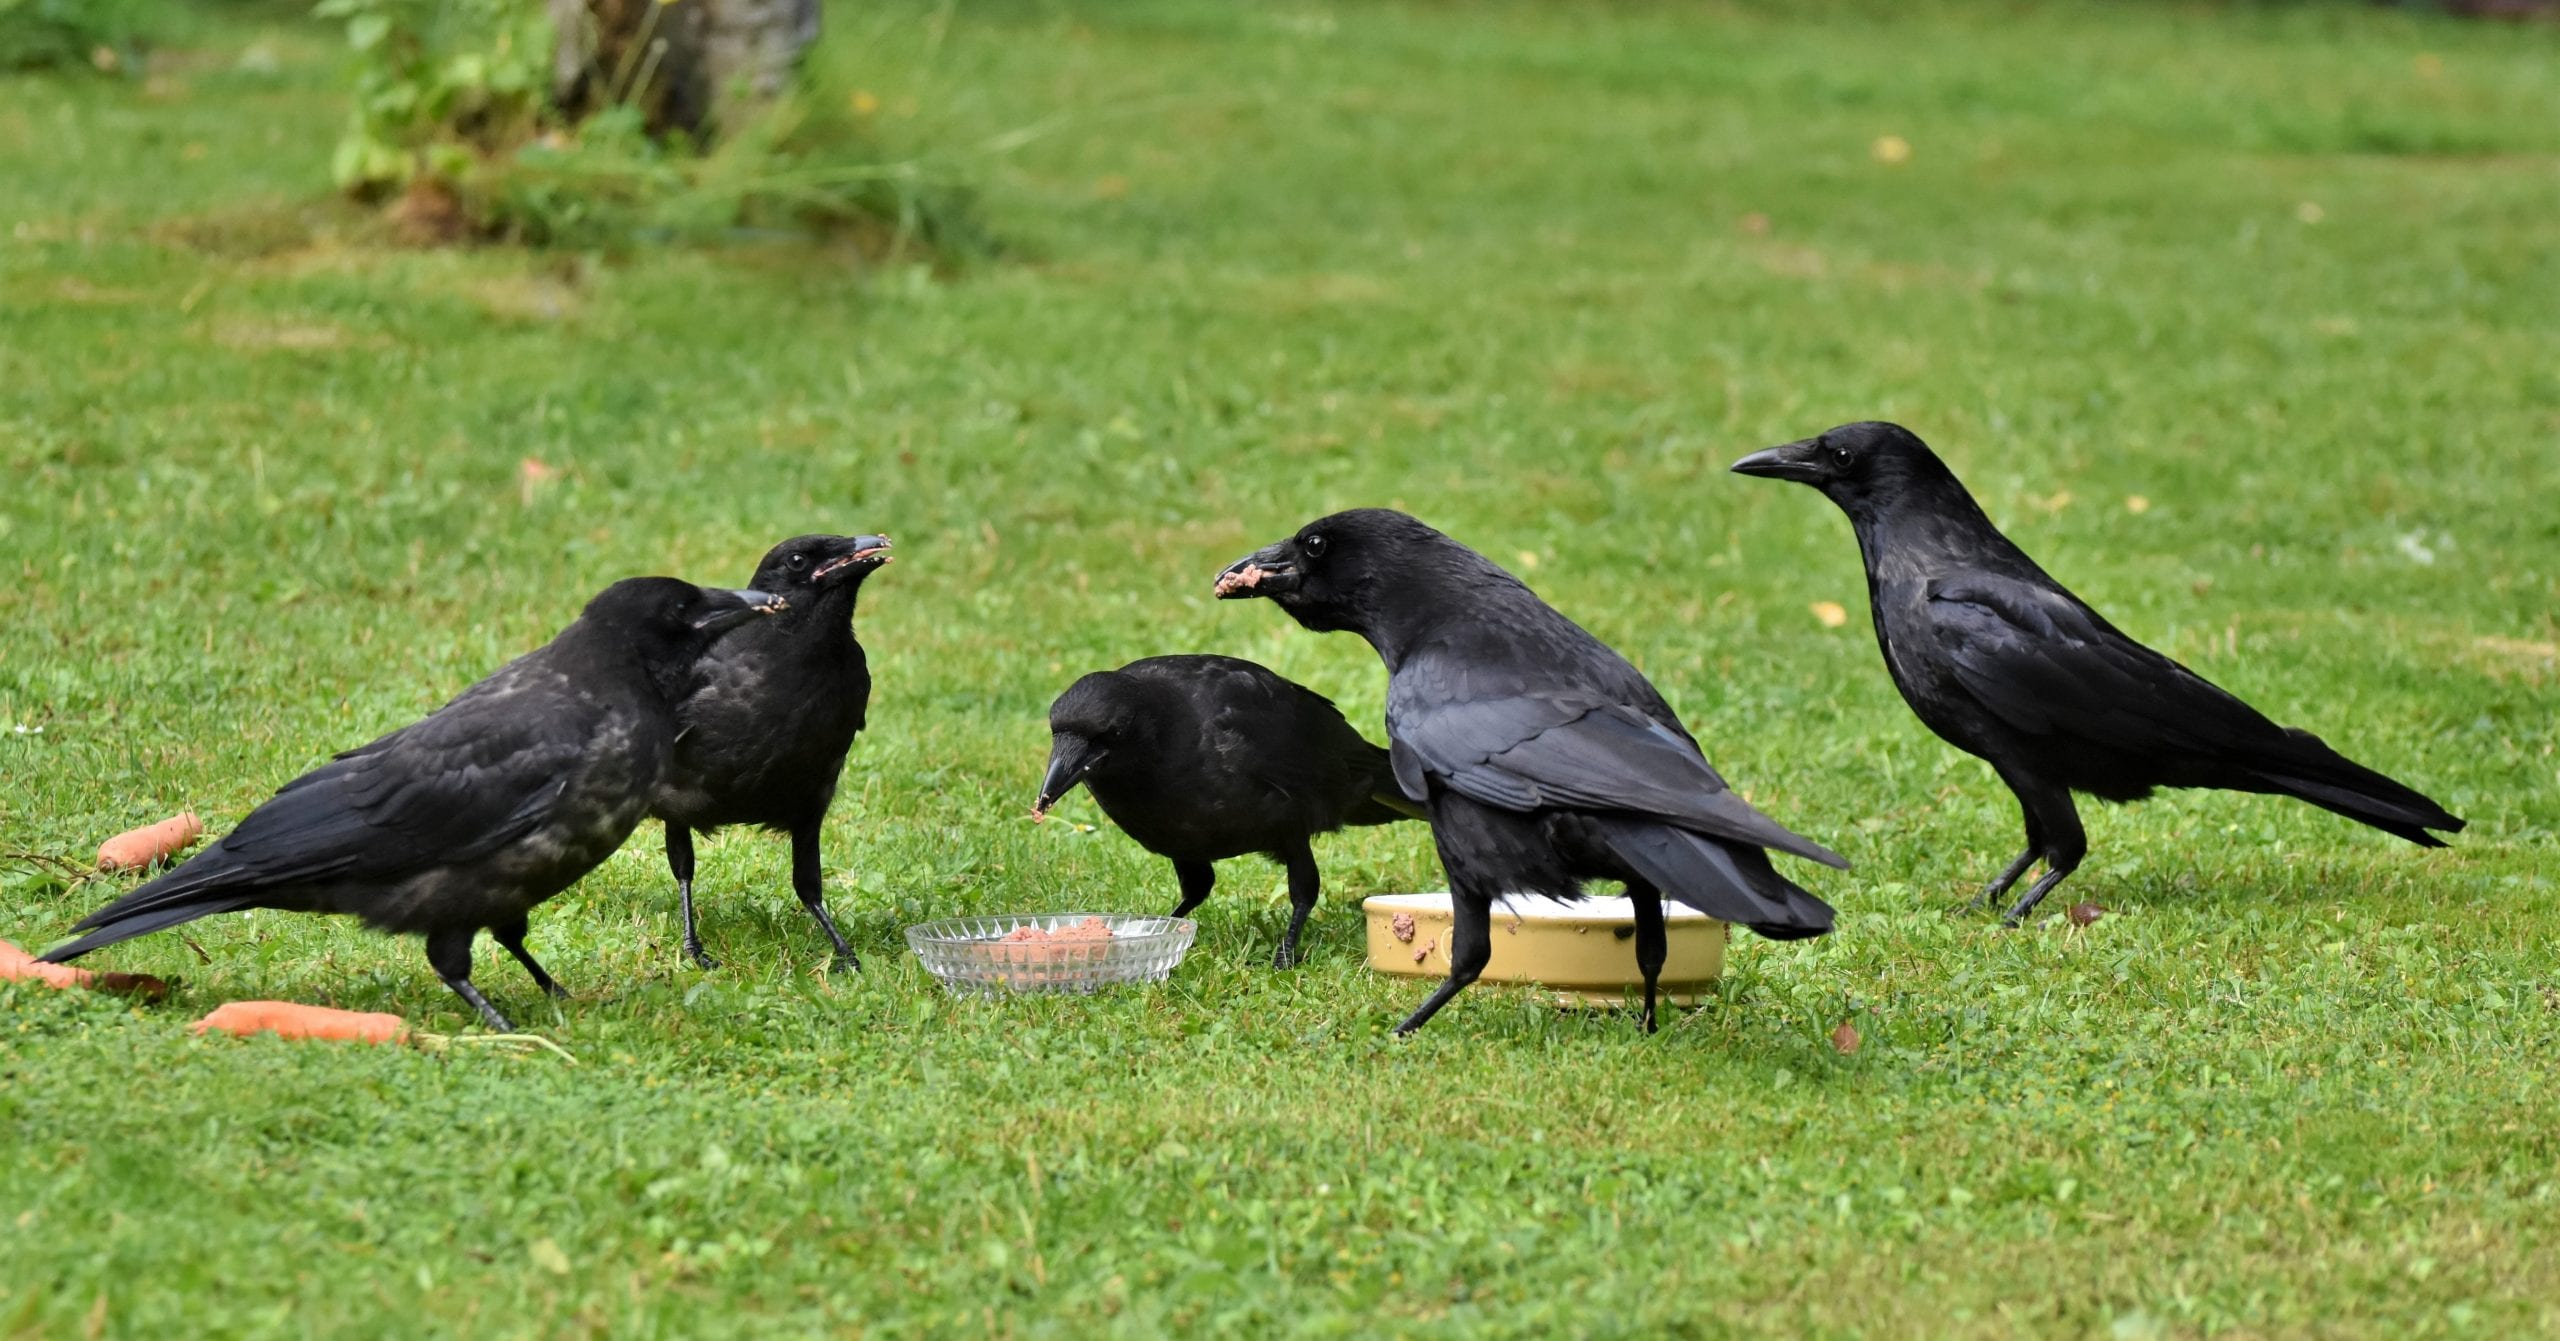 Family of Crows